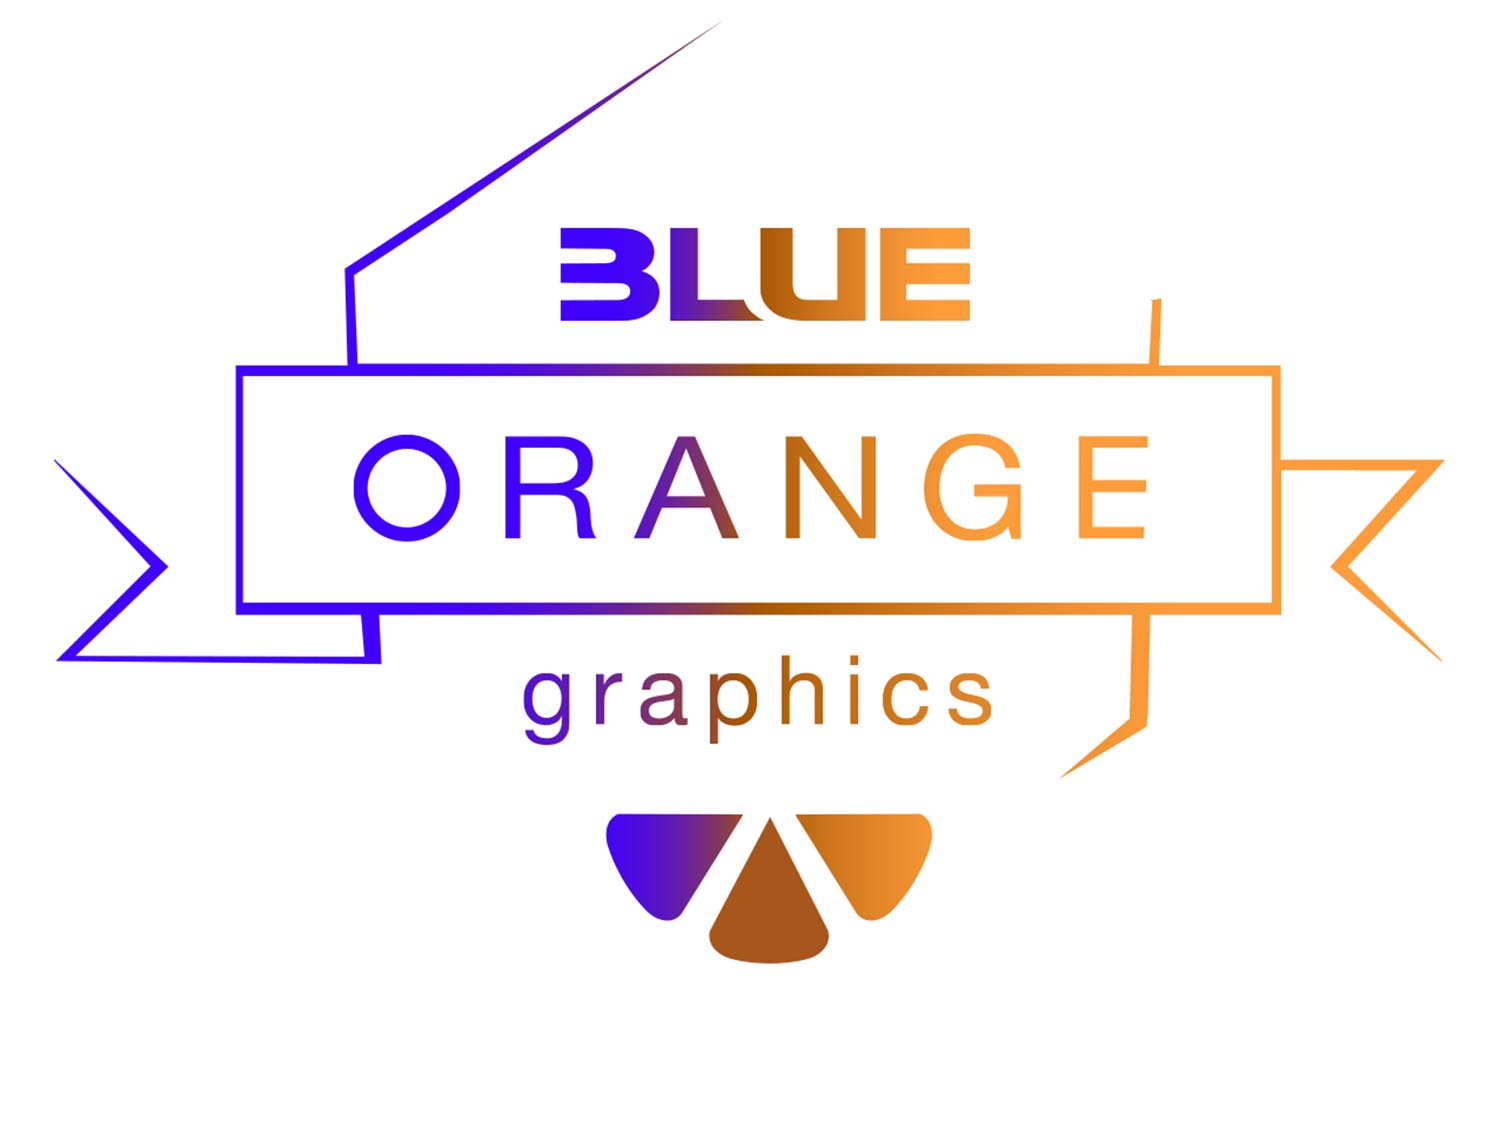 BlueOrangeGraphics